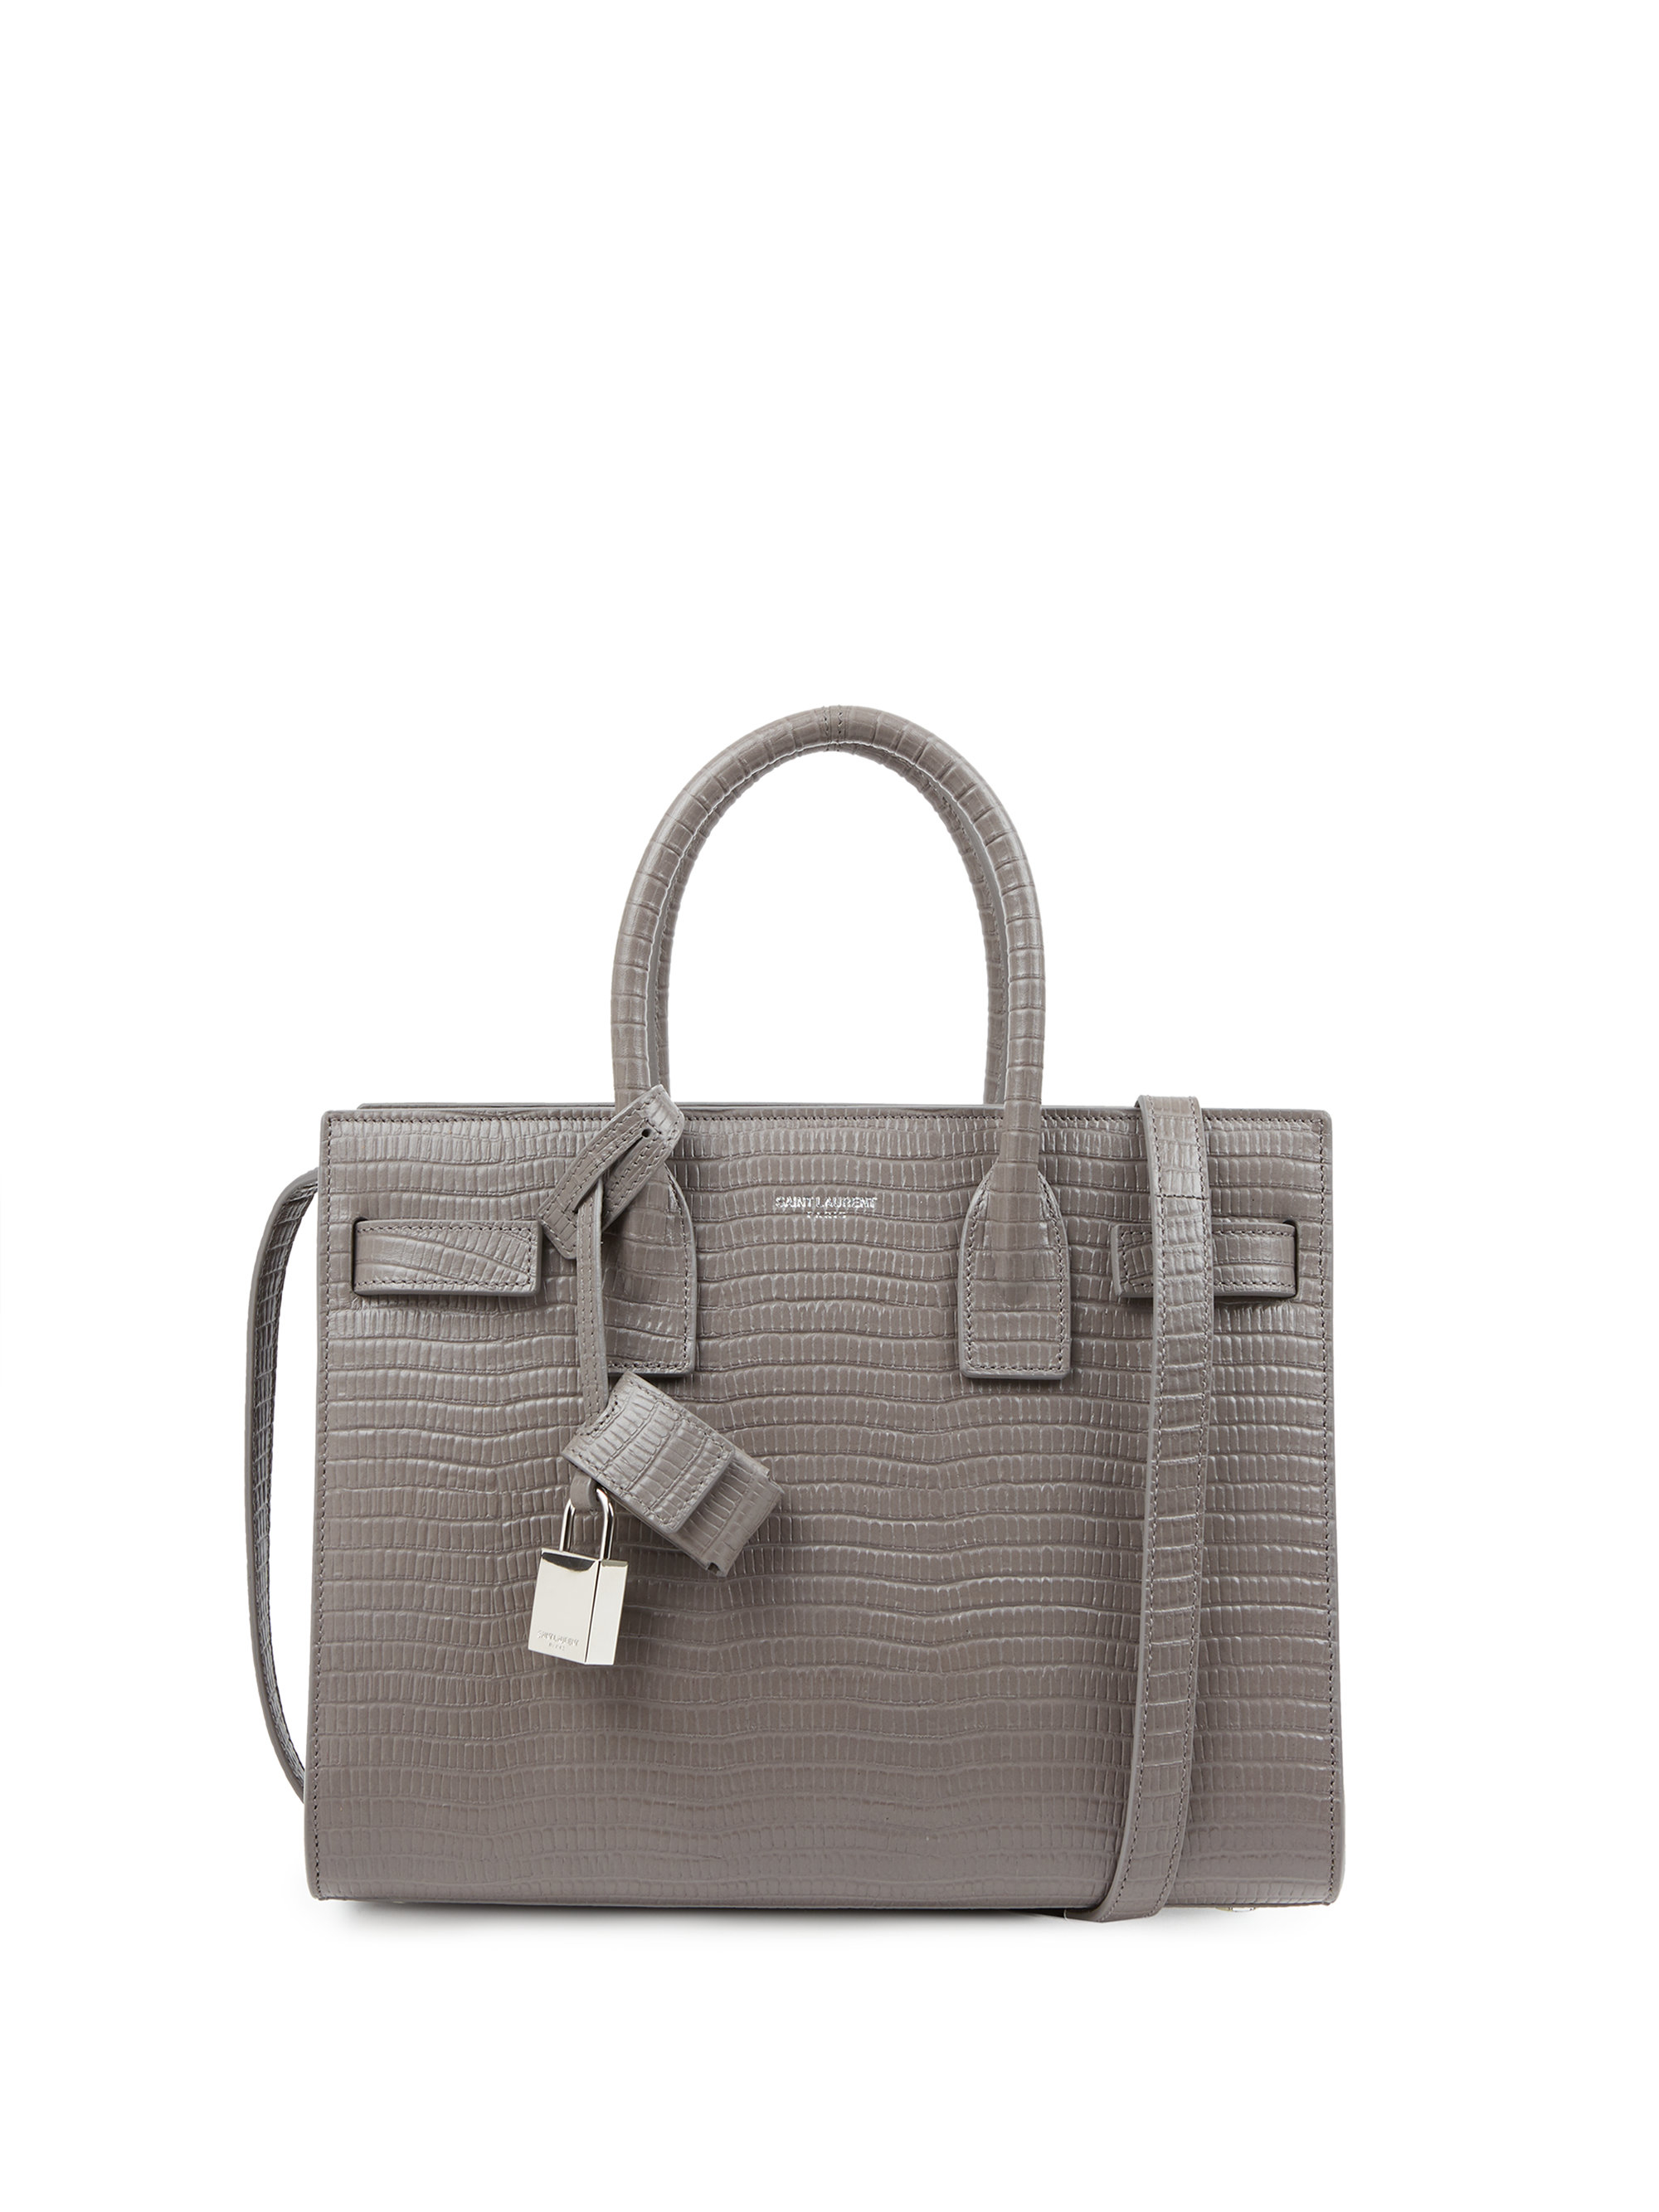 tote ysl - Saint laurent Sac De Jour Baby Lizard-embossed Leather Tote in ...